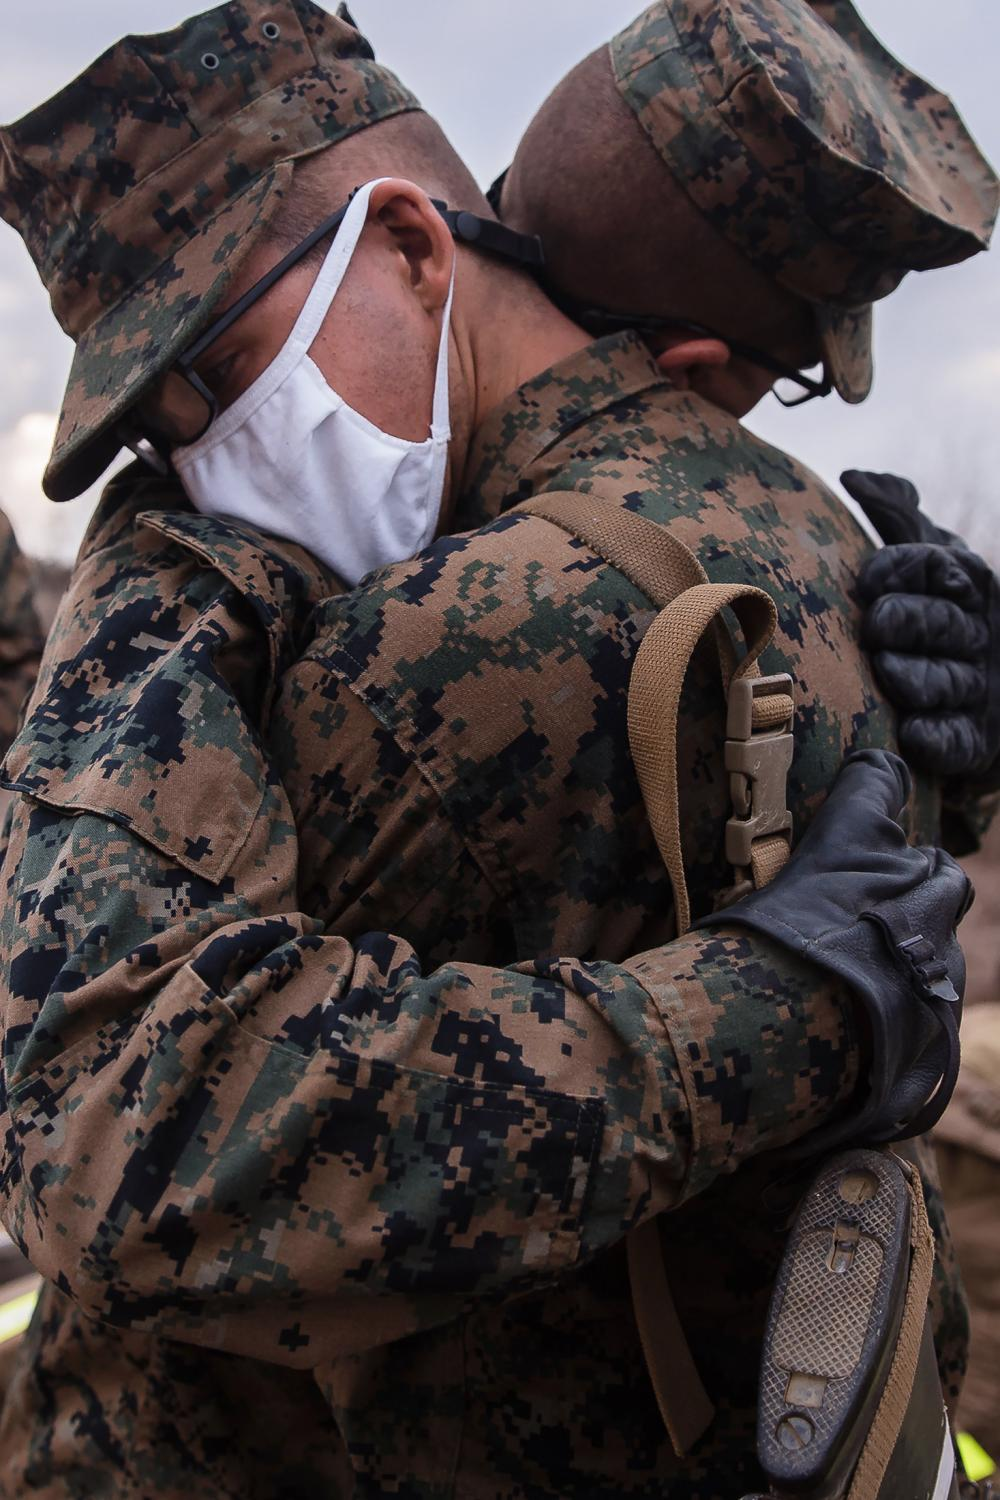 Two recruits hug one another after completing the Crucible that lasted 54 hours.